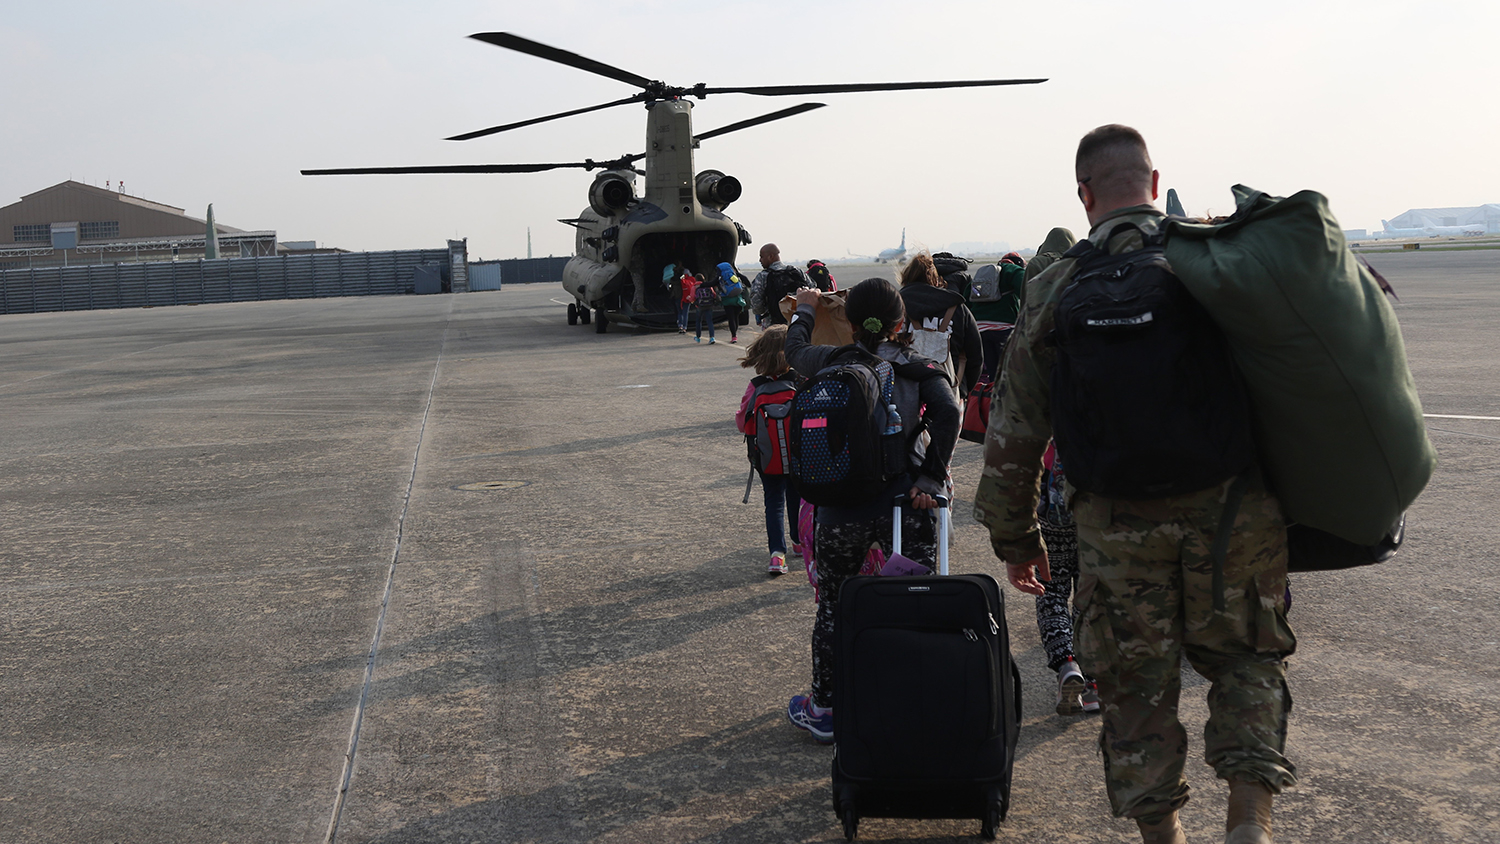 noncombatants boarding a military transport helicopter